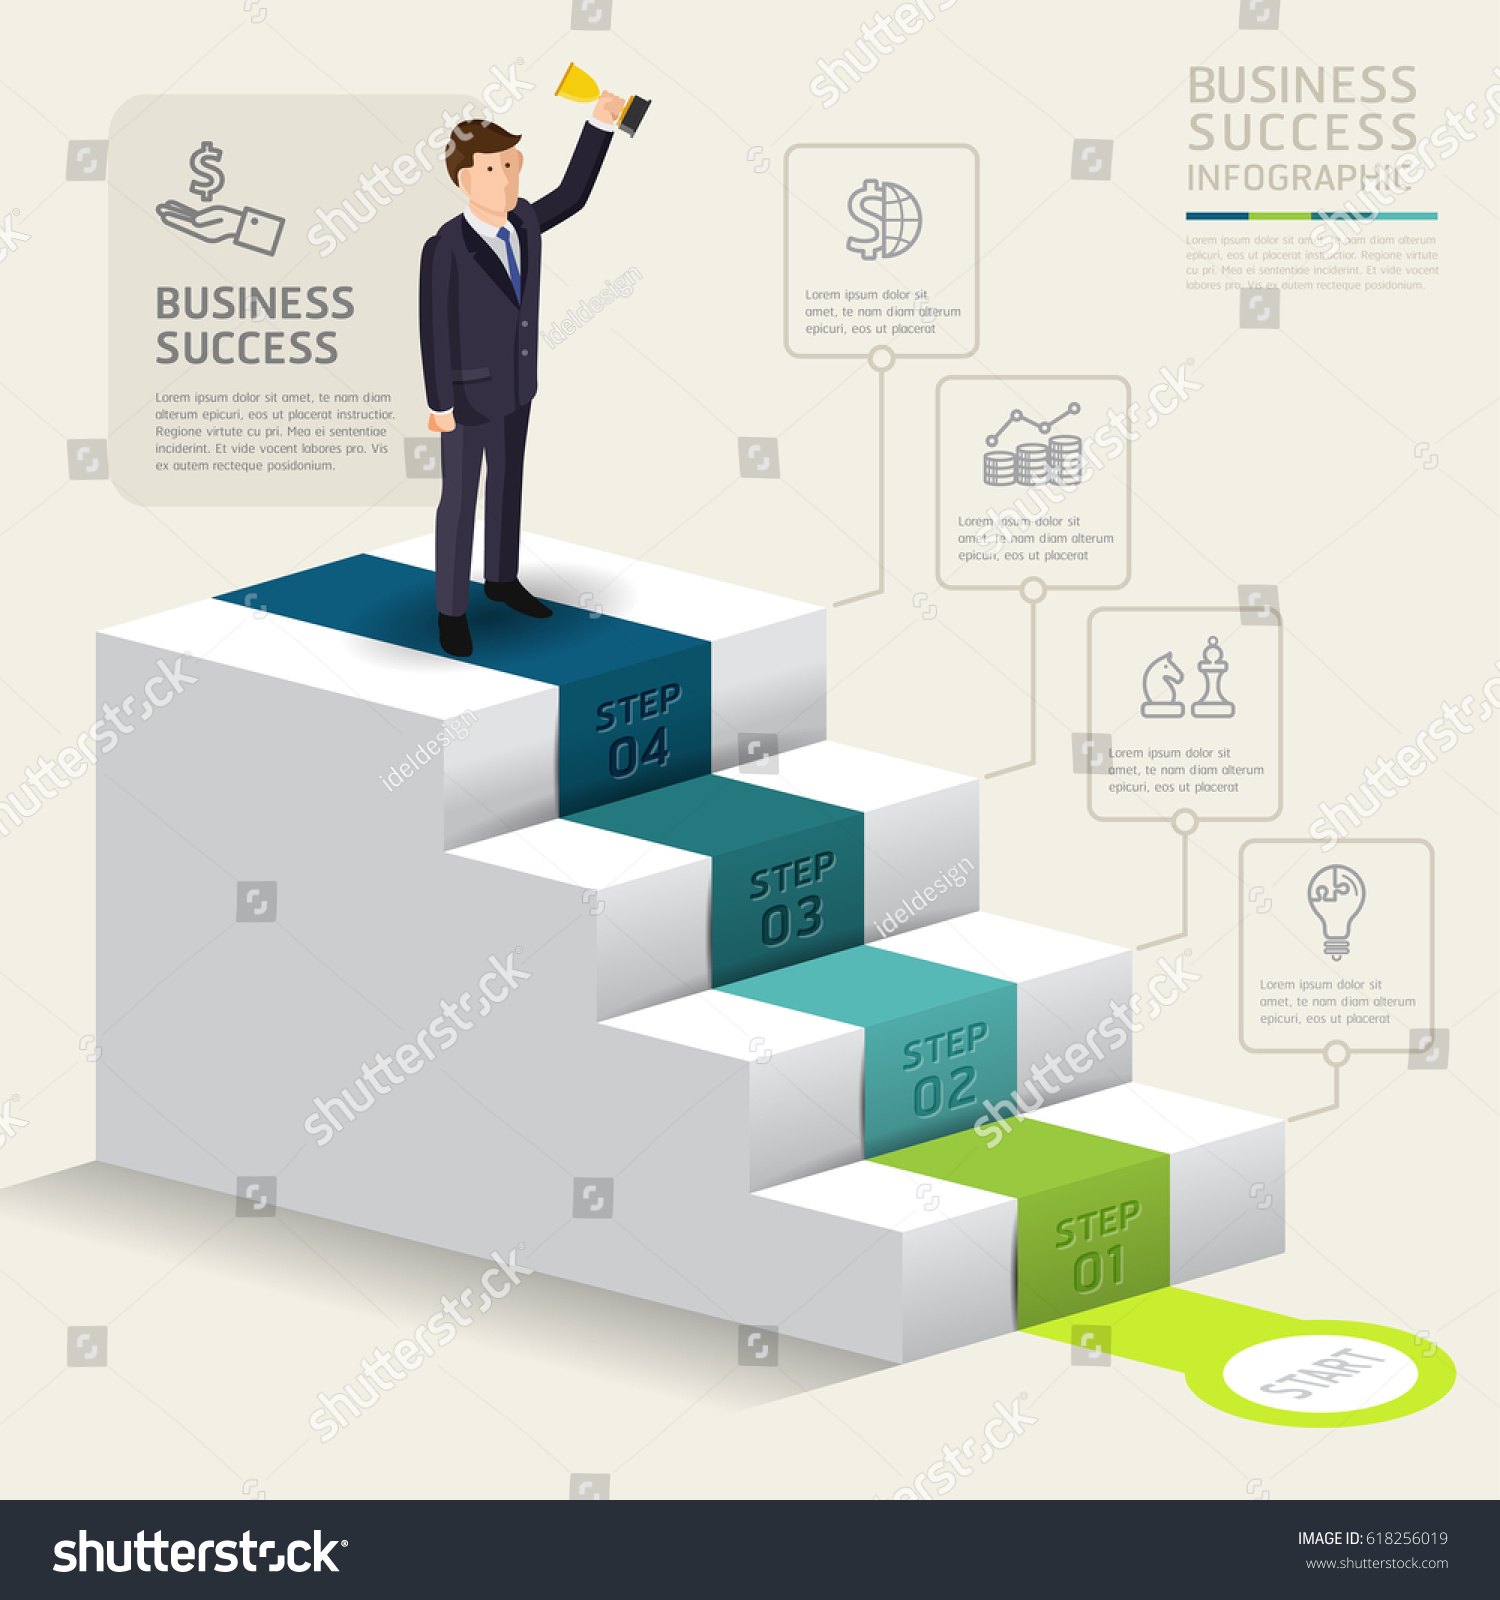 Business Step Steps Starting Business Template Success Businessman Stock Vector